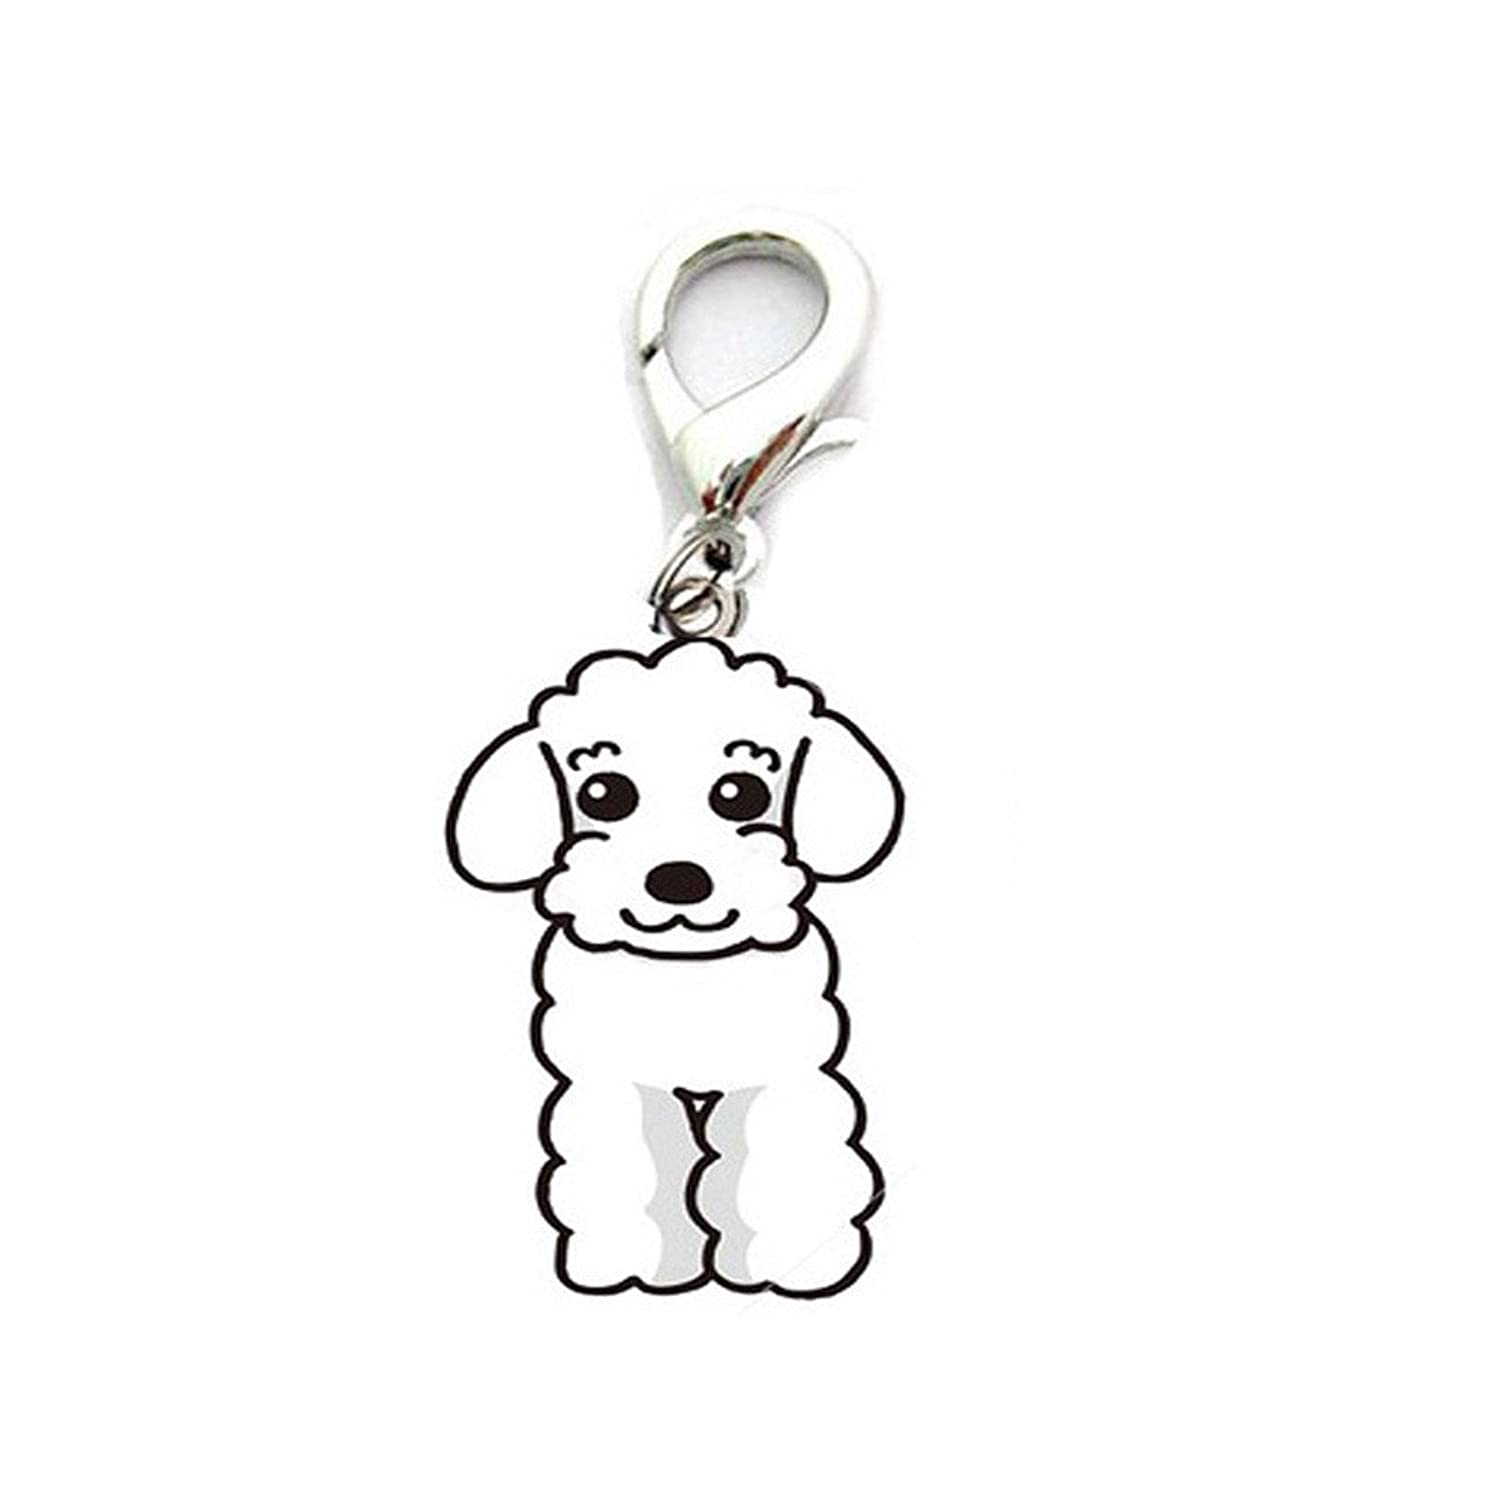 New Arrival Keychian Lovely Dog Tag Disc Disk Pet Id Accessories Collar Keychain Three Color Gift For Friend #88^Brown